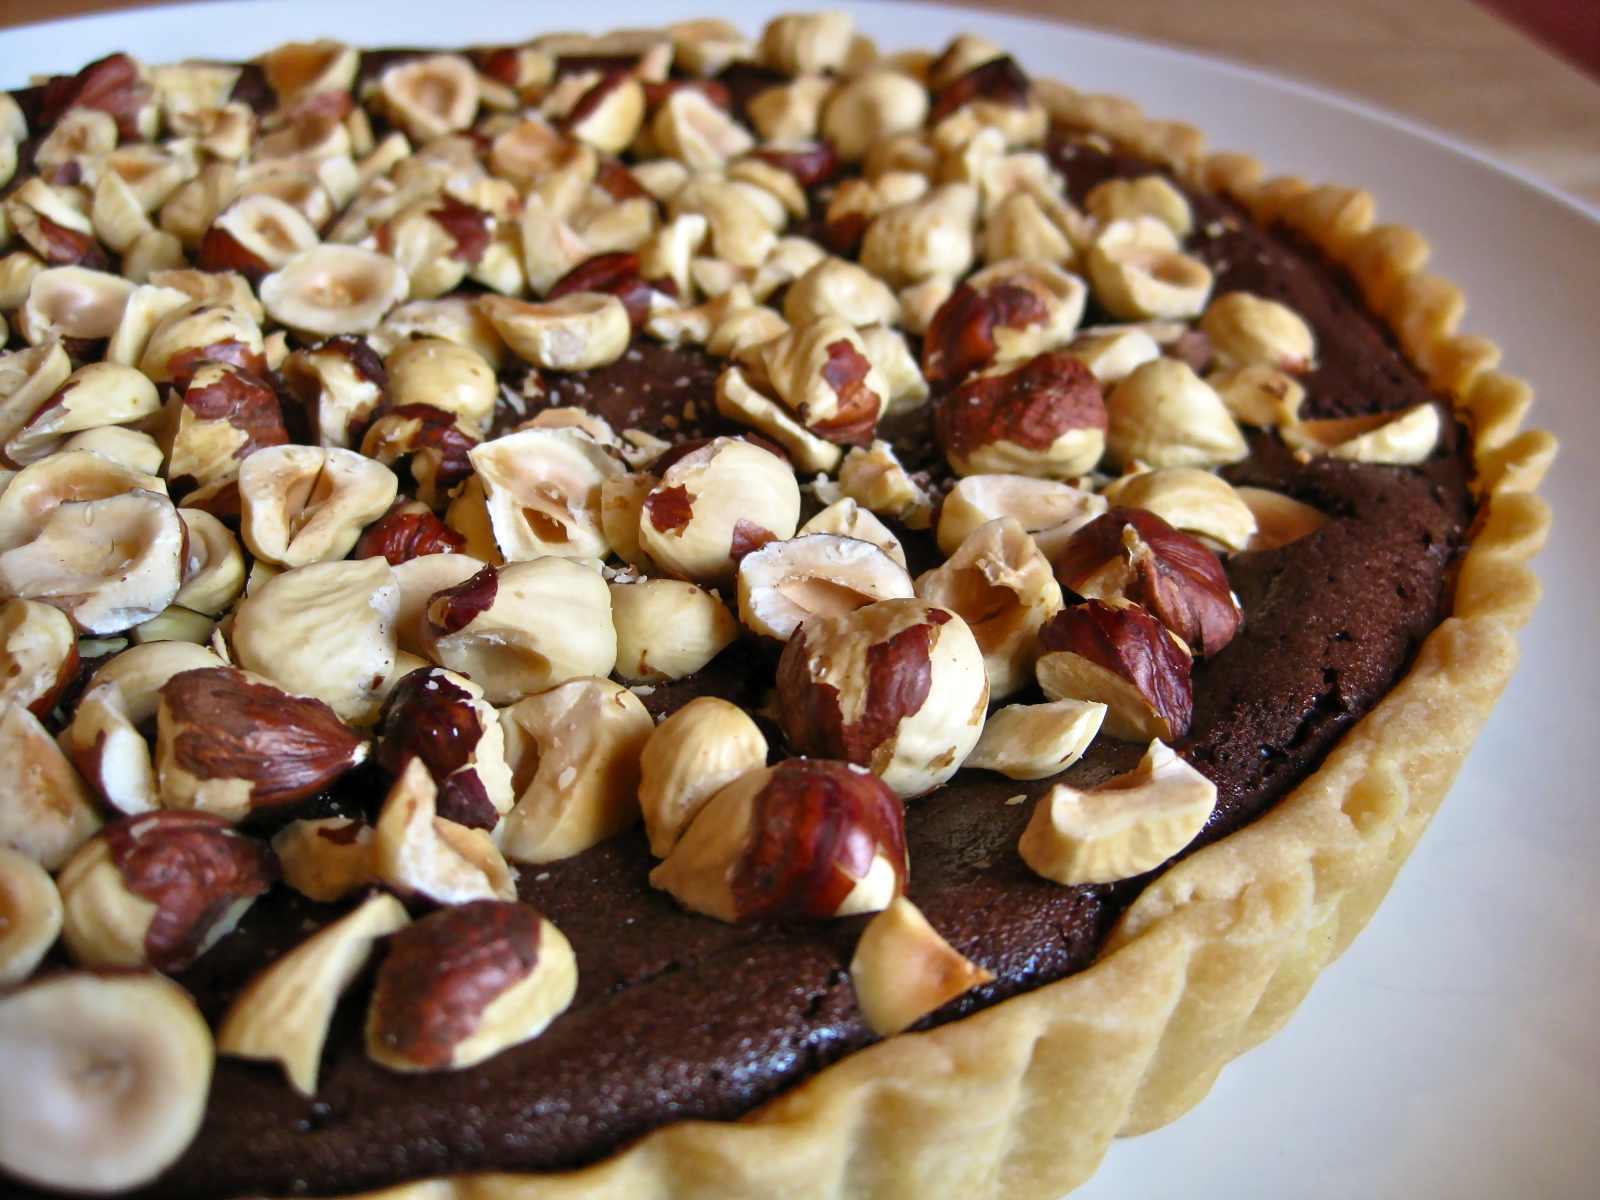 3809-chocolate-hazelnut-tart.jpg